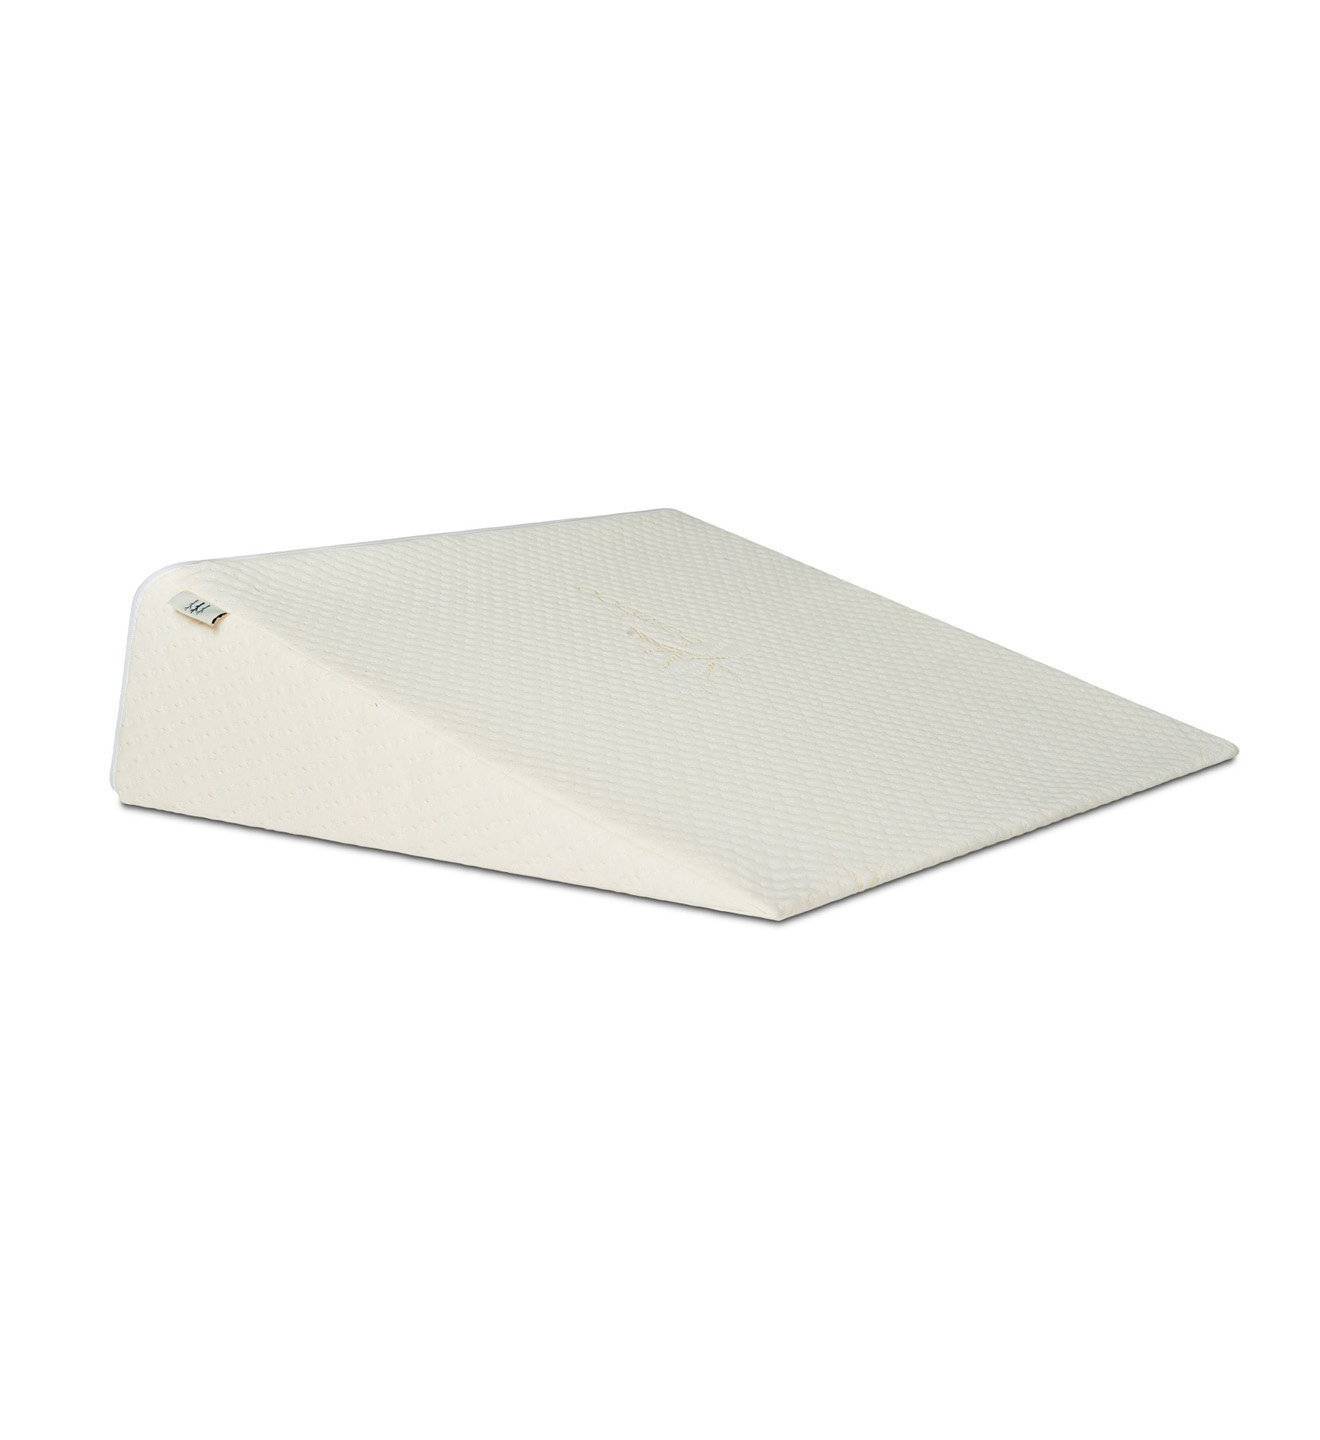 Bed Wedge Reading Pillow